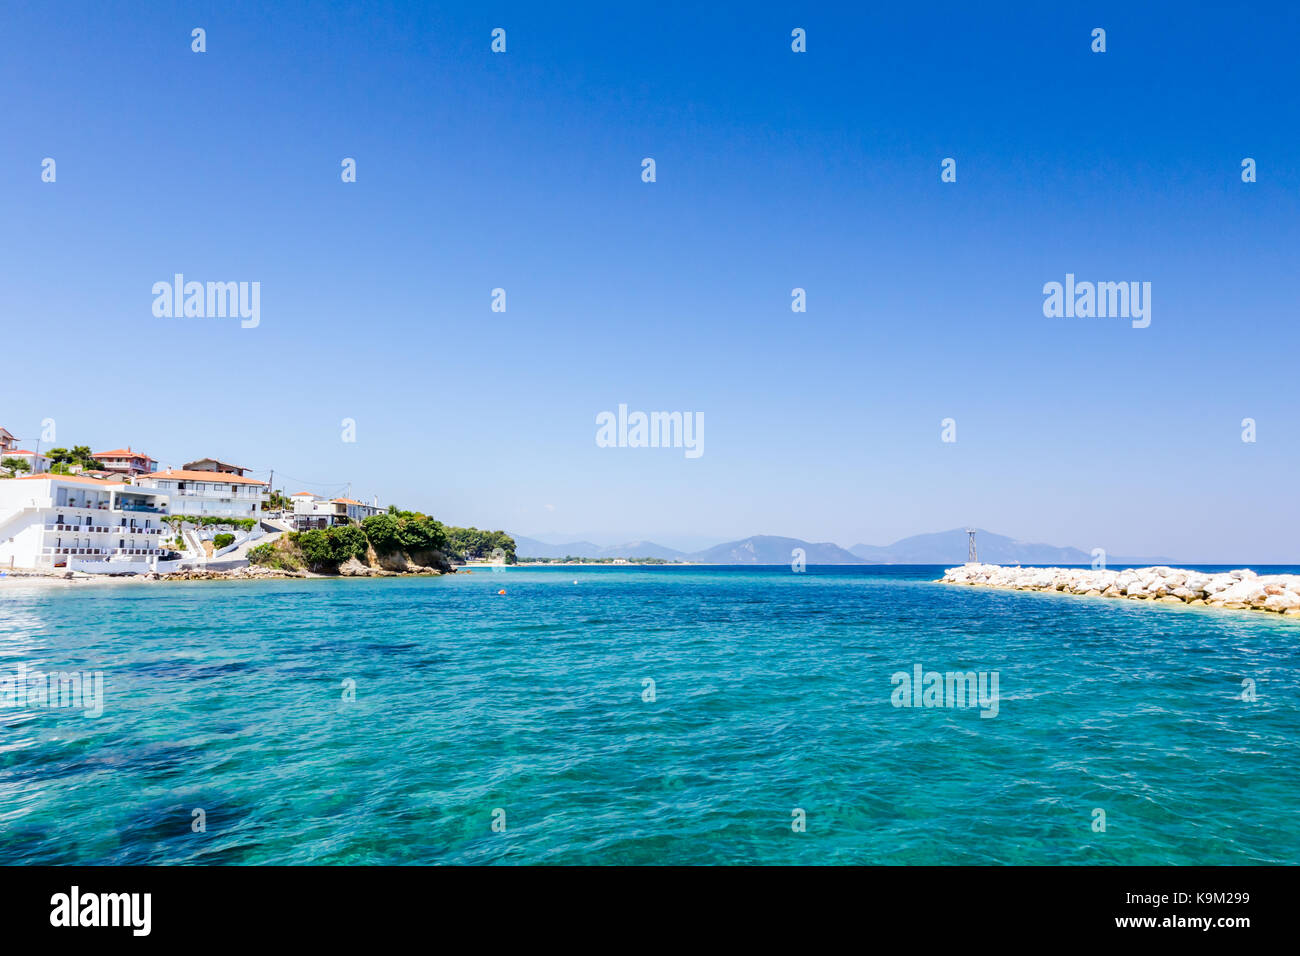 Rocky shallows with crystal clear water and beautiful settlement over blue sea. Stock Photo